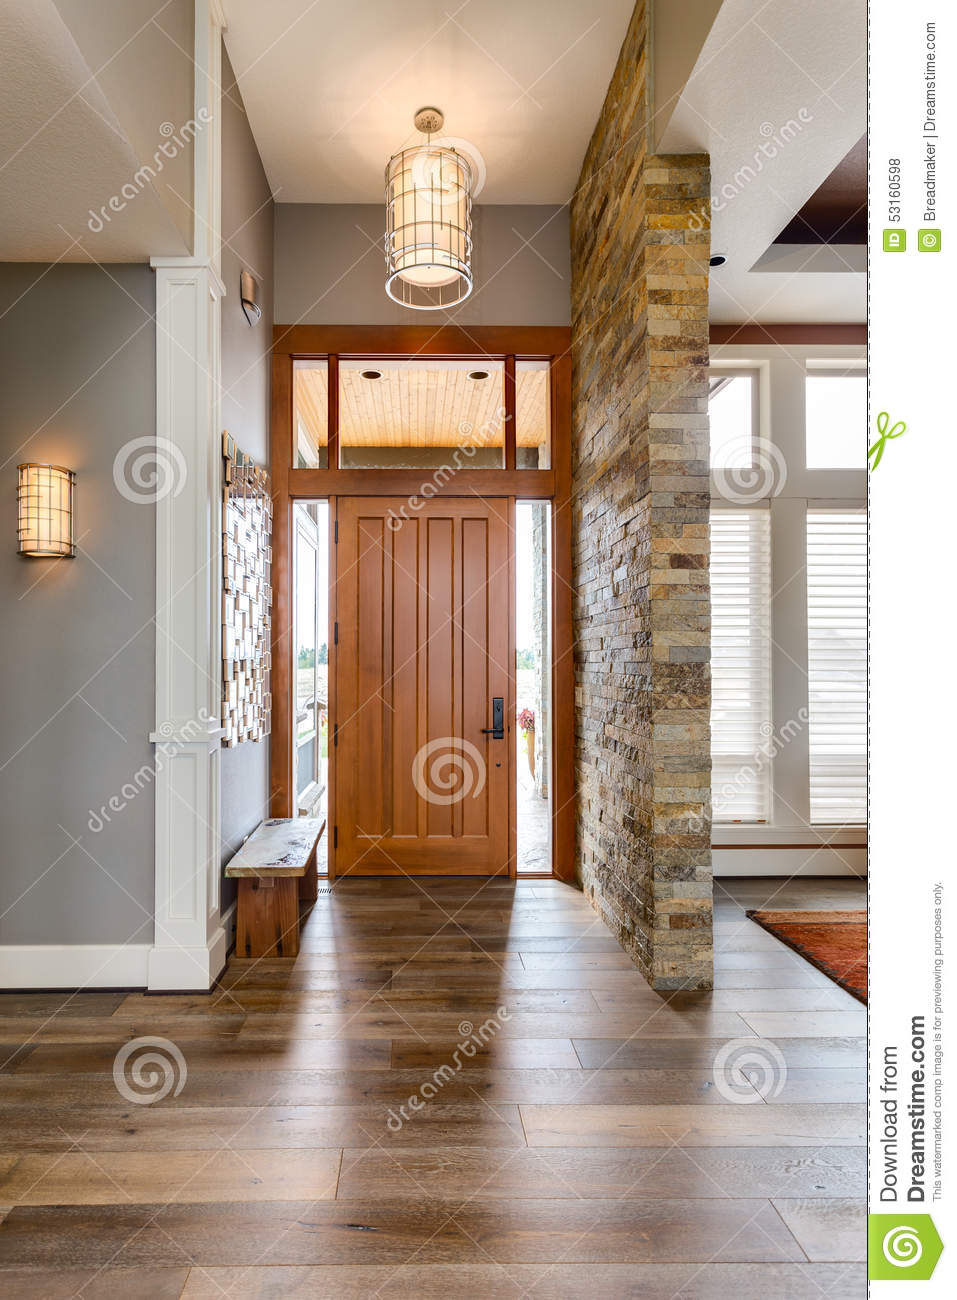 Foyer Stone Design : Entryway foyer in new luxury home stock photo image of